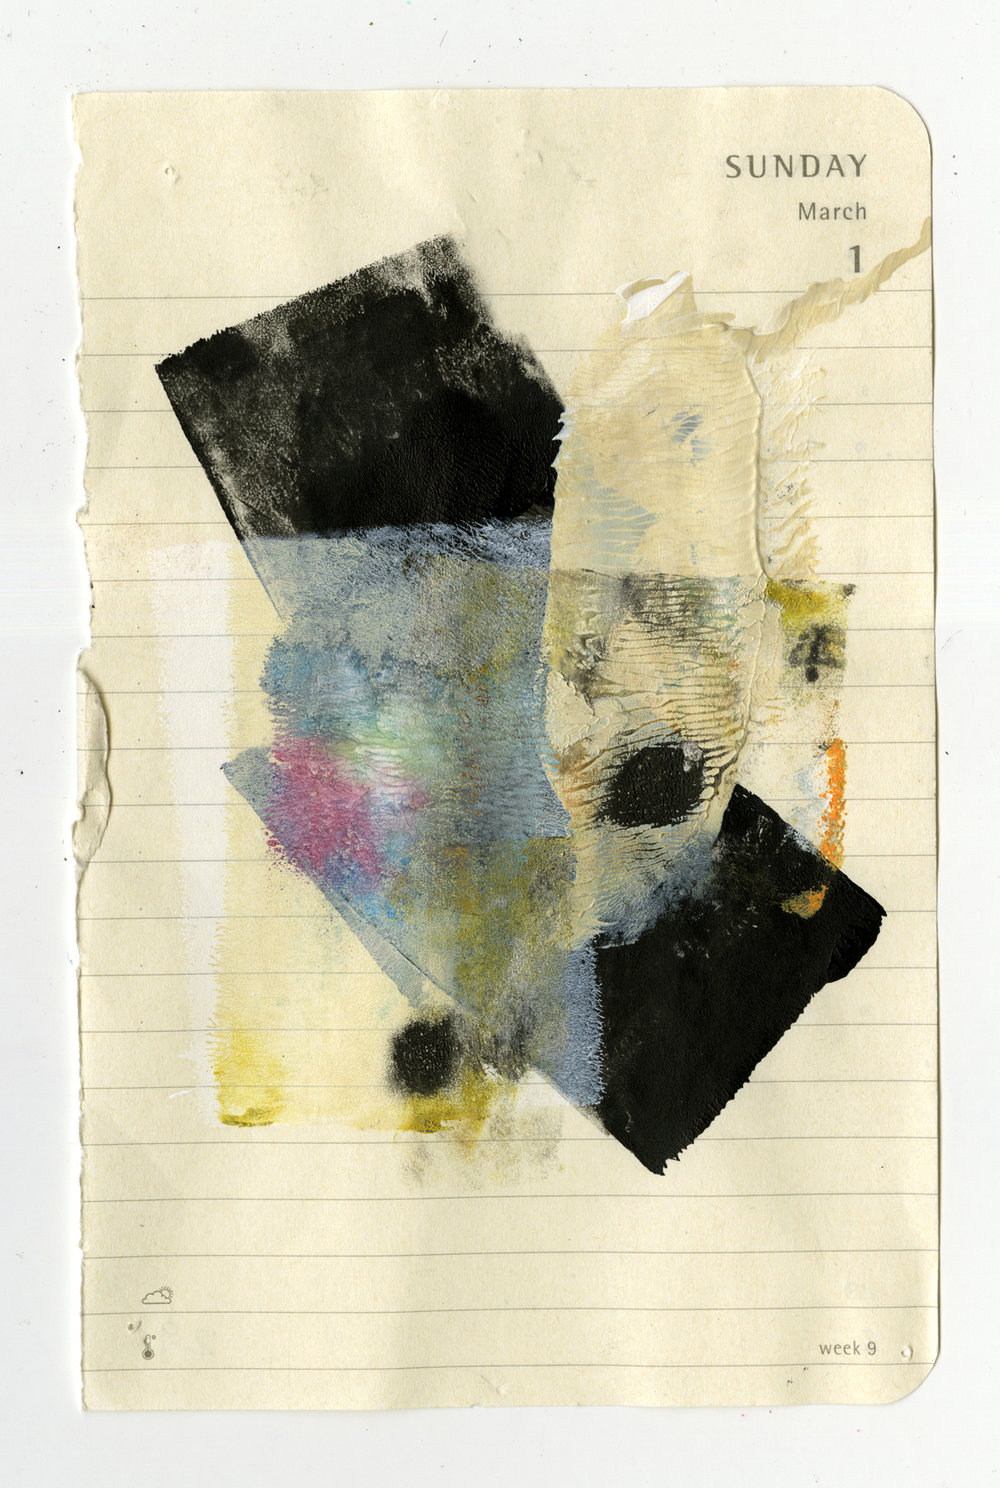 RITA BERNSTEIN | Diary Page (March 1), 5.5 x 3.5 inches / 14 x 8.9 cm, oil, charcoal, graphite on paper, 2018